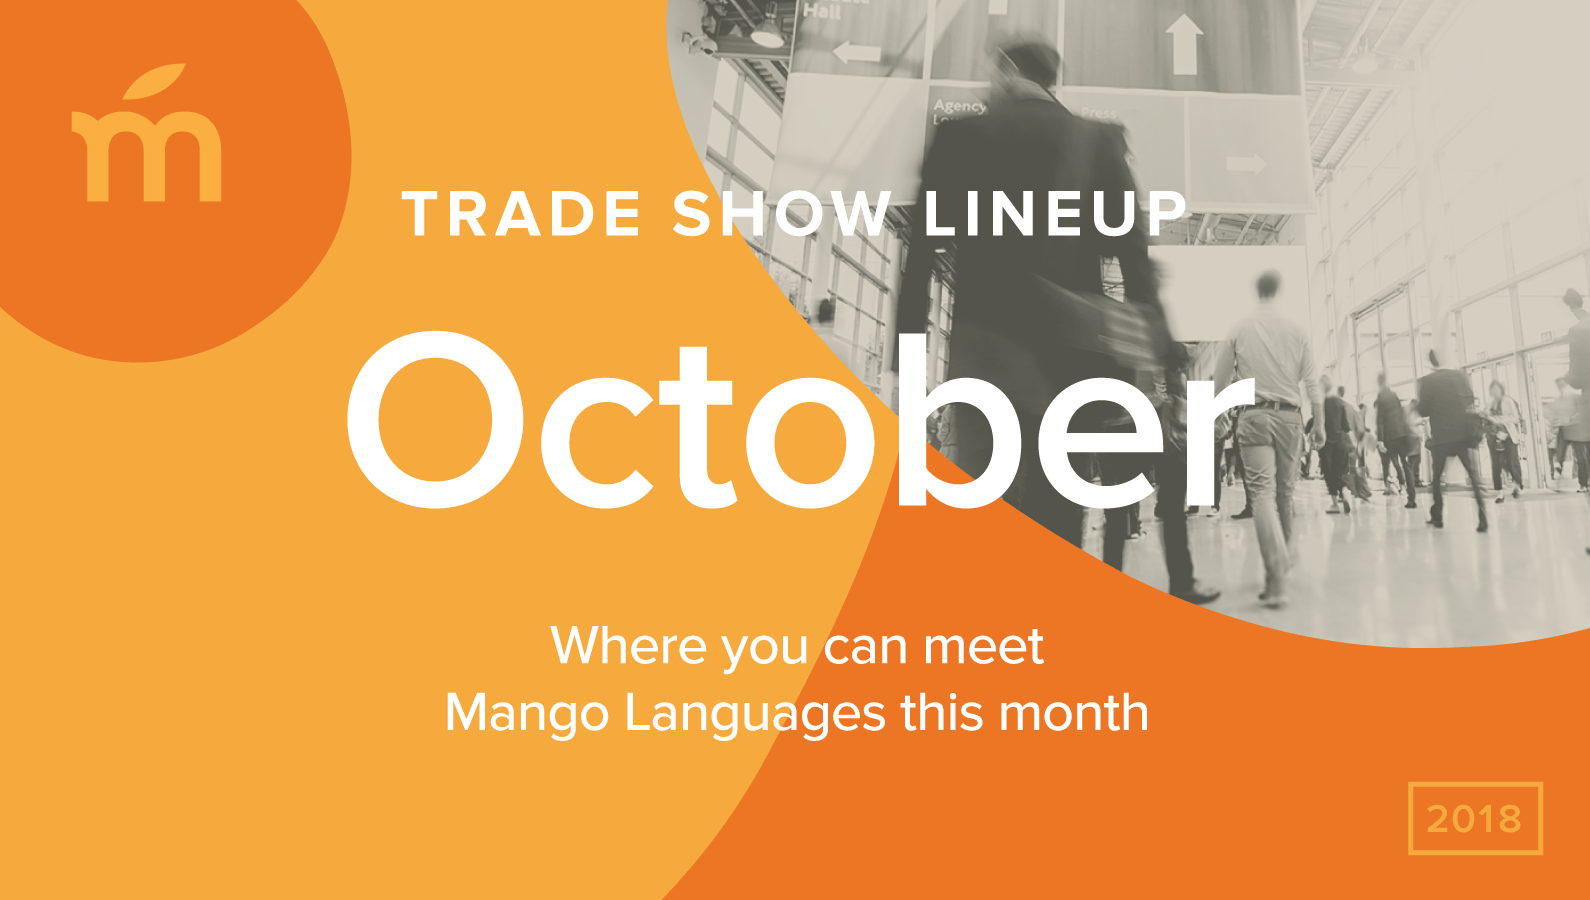 October trade show line up: Where you can meet Mango Languages